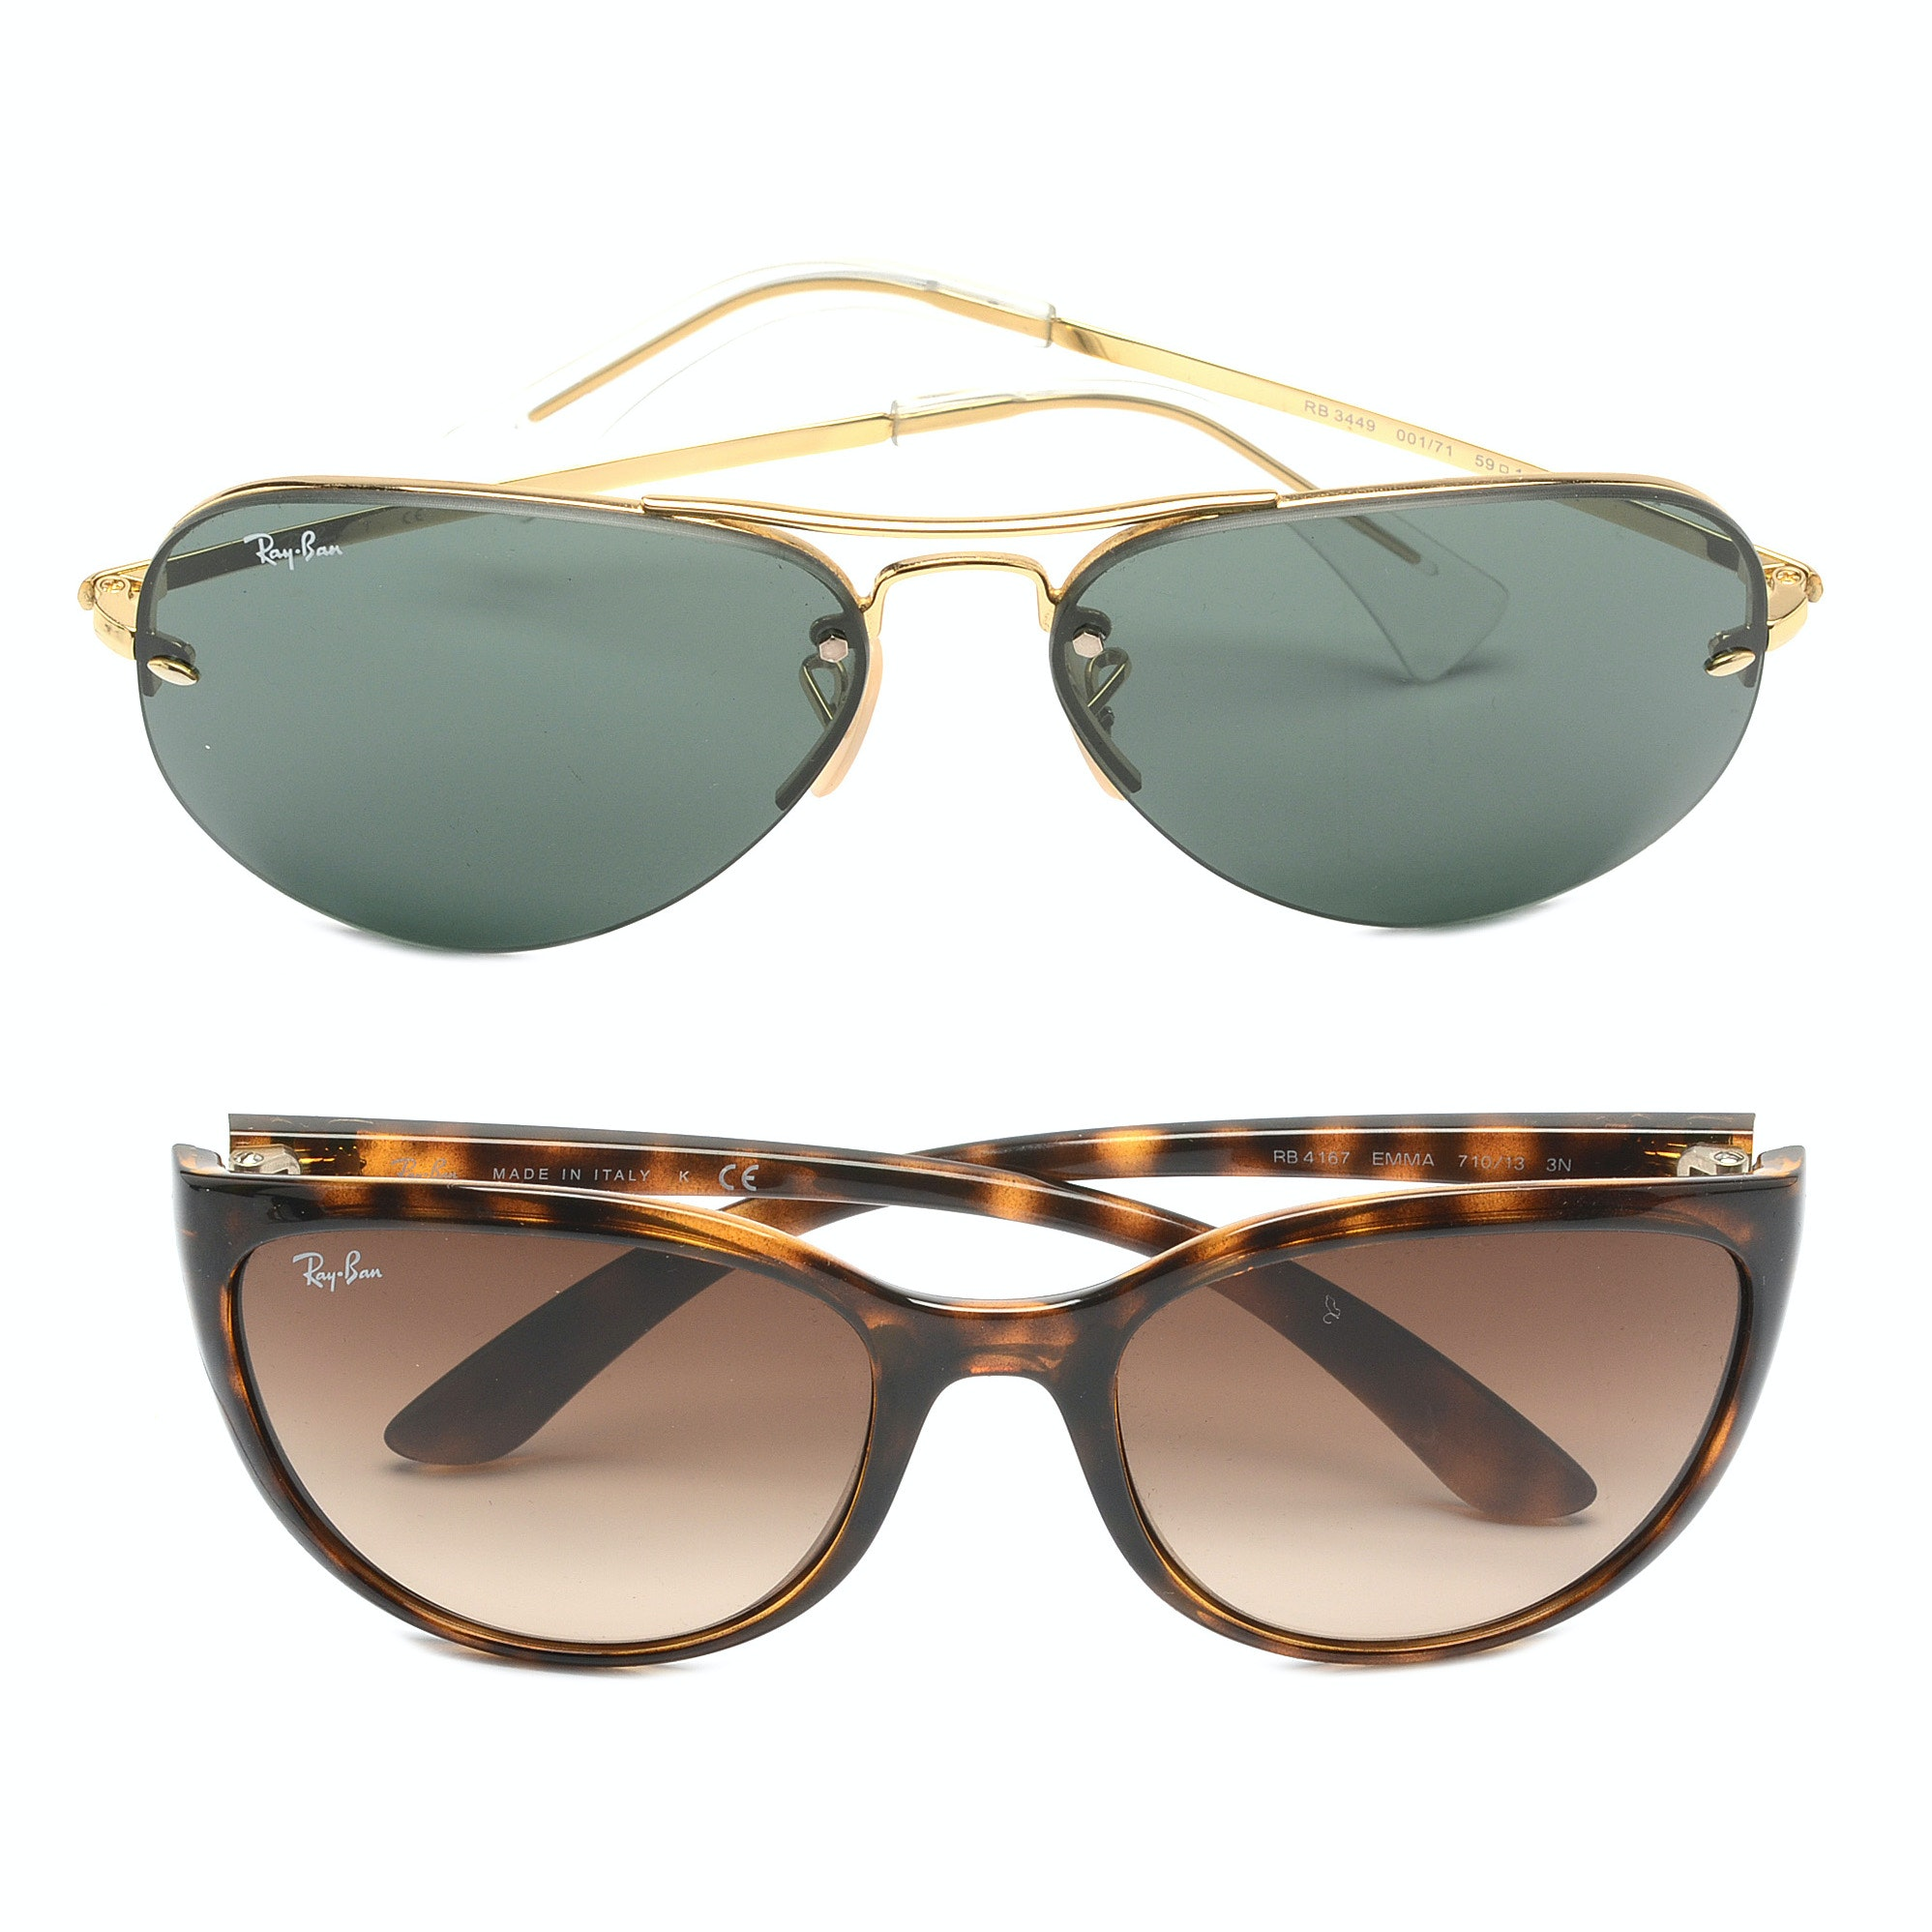 Two Pairs of Ray-Ban Sunglasses